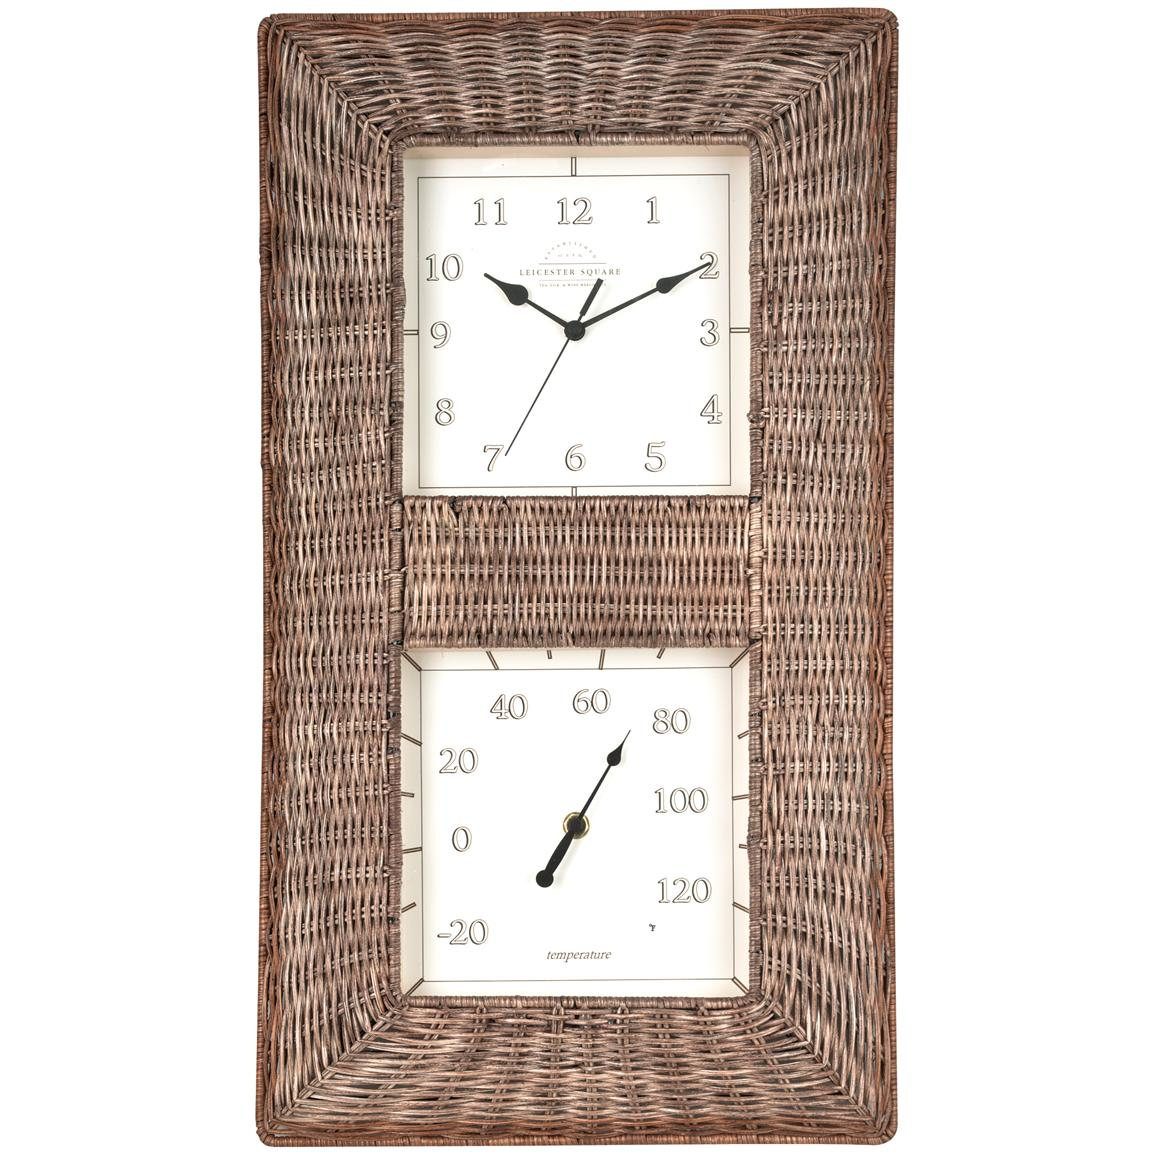 Wicker Thermometer / Clock Combo